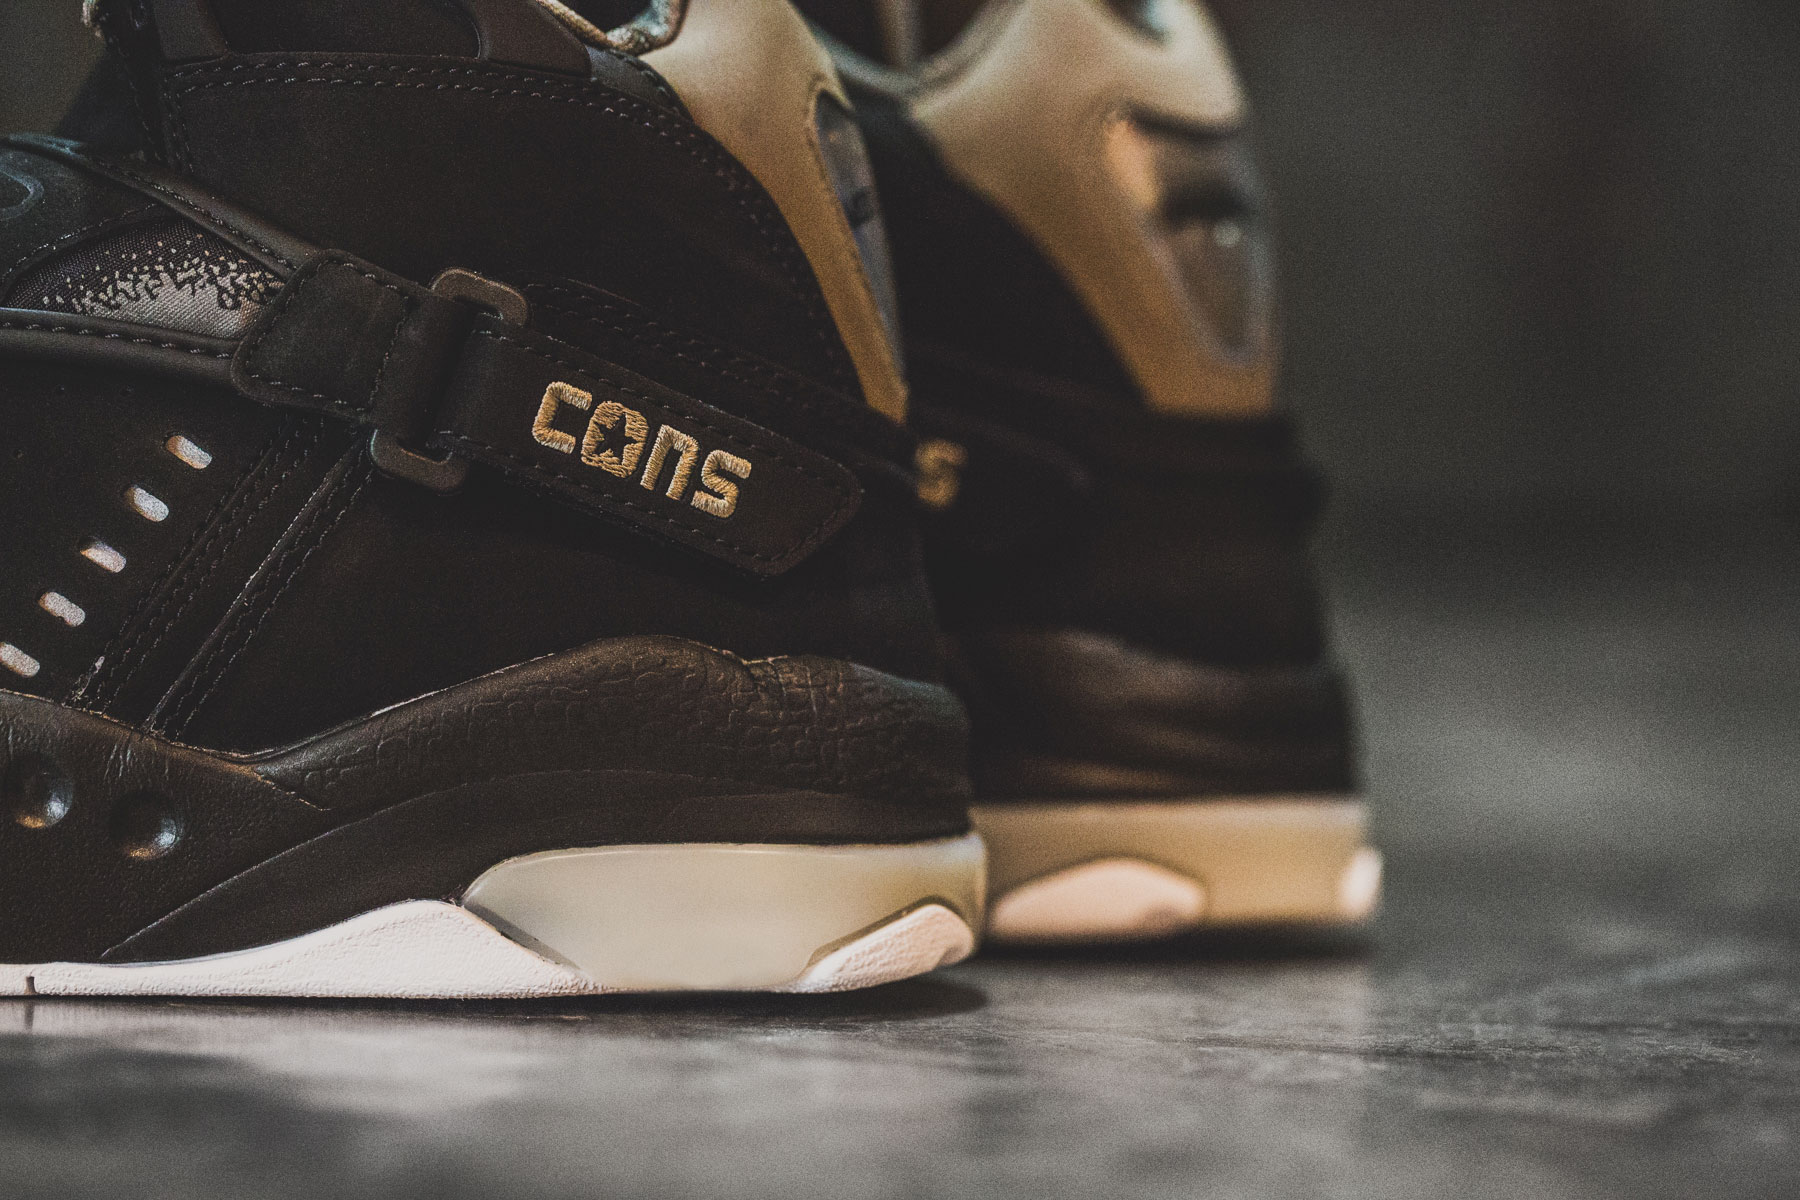 Converse CONS 2014 Fall/Winter AEROJAM